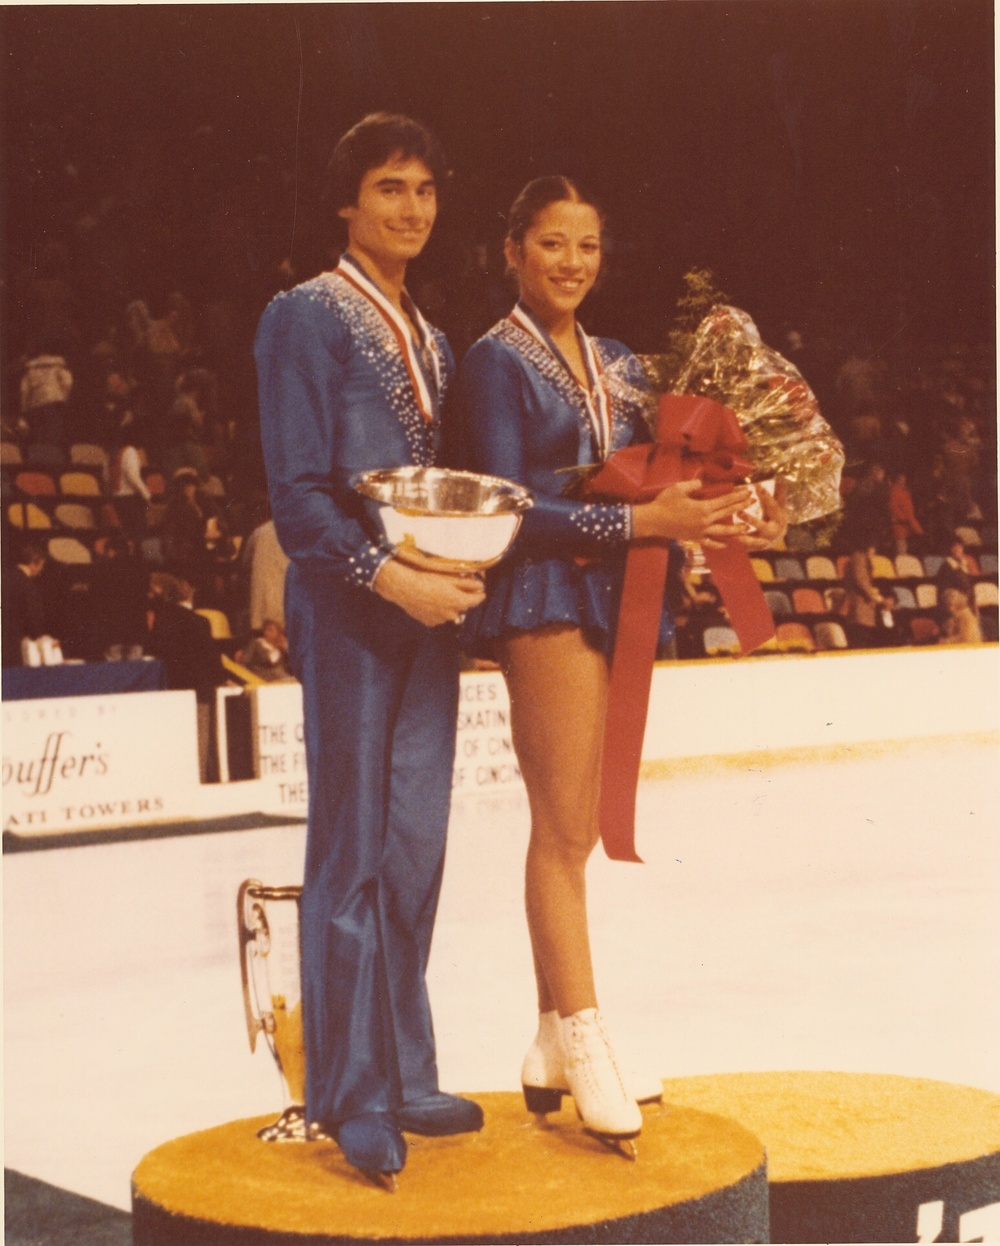 Lake Placid 1980 - Tai Babilonia (right) and Randy Gardner competed at Lake Placid 1980; here as the 1979 World Pairs champions.   (Source: randygarnermemoirs.wordpress.com)